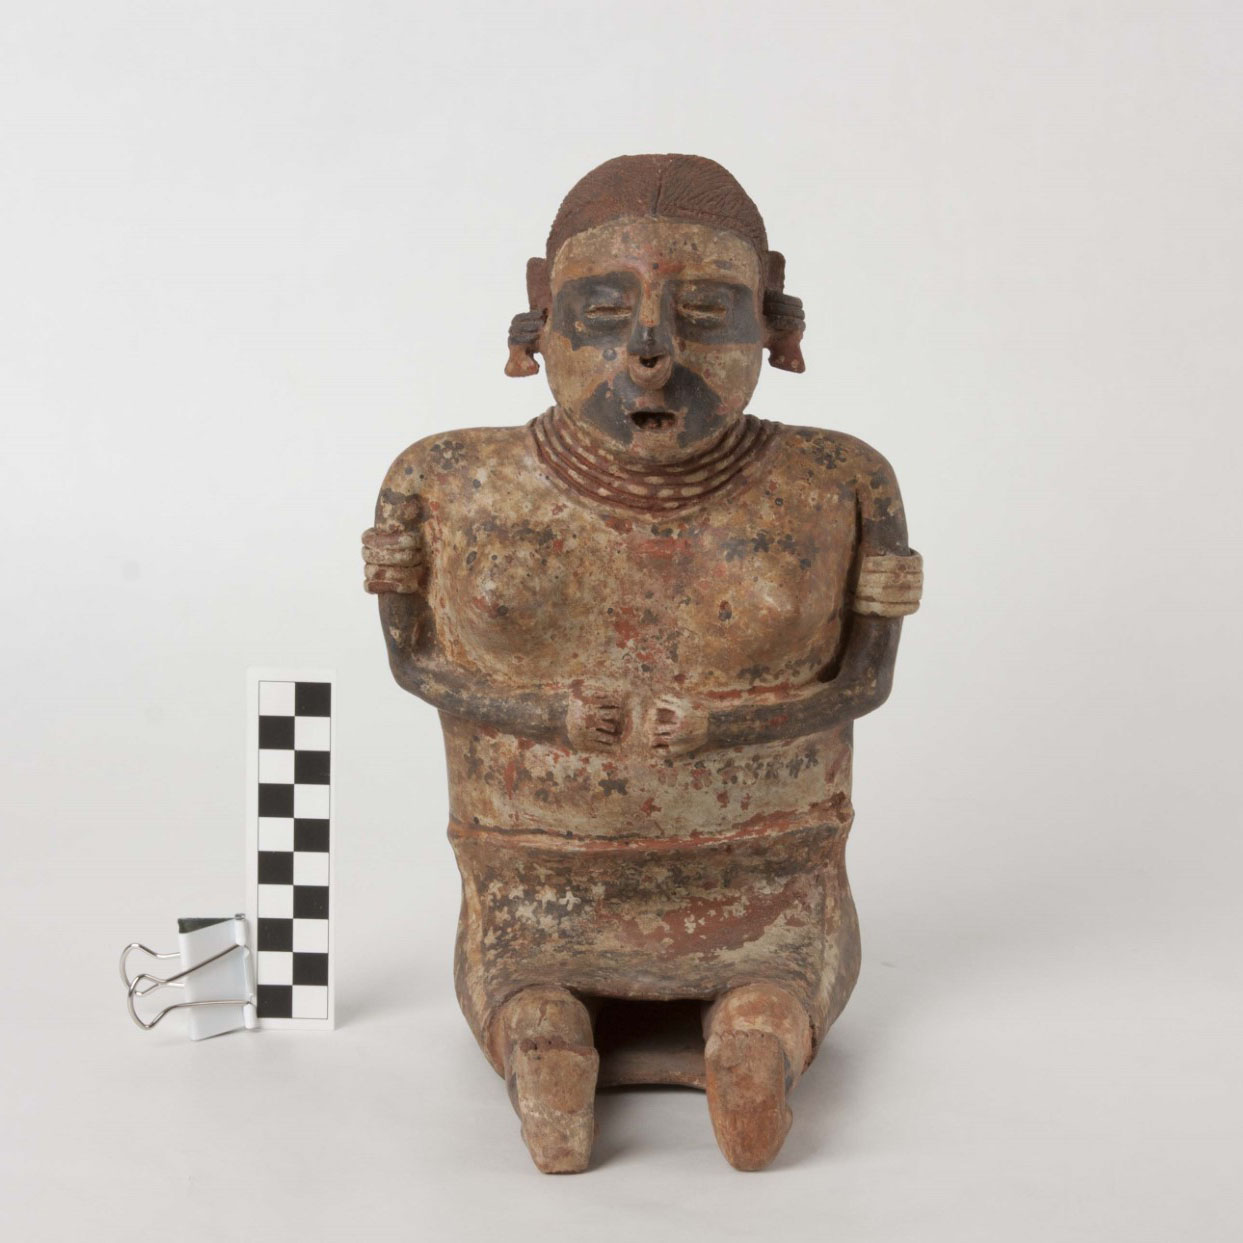 Identities in Clay: Anthropomorphic Figurines from Ancient West Mexico